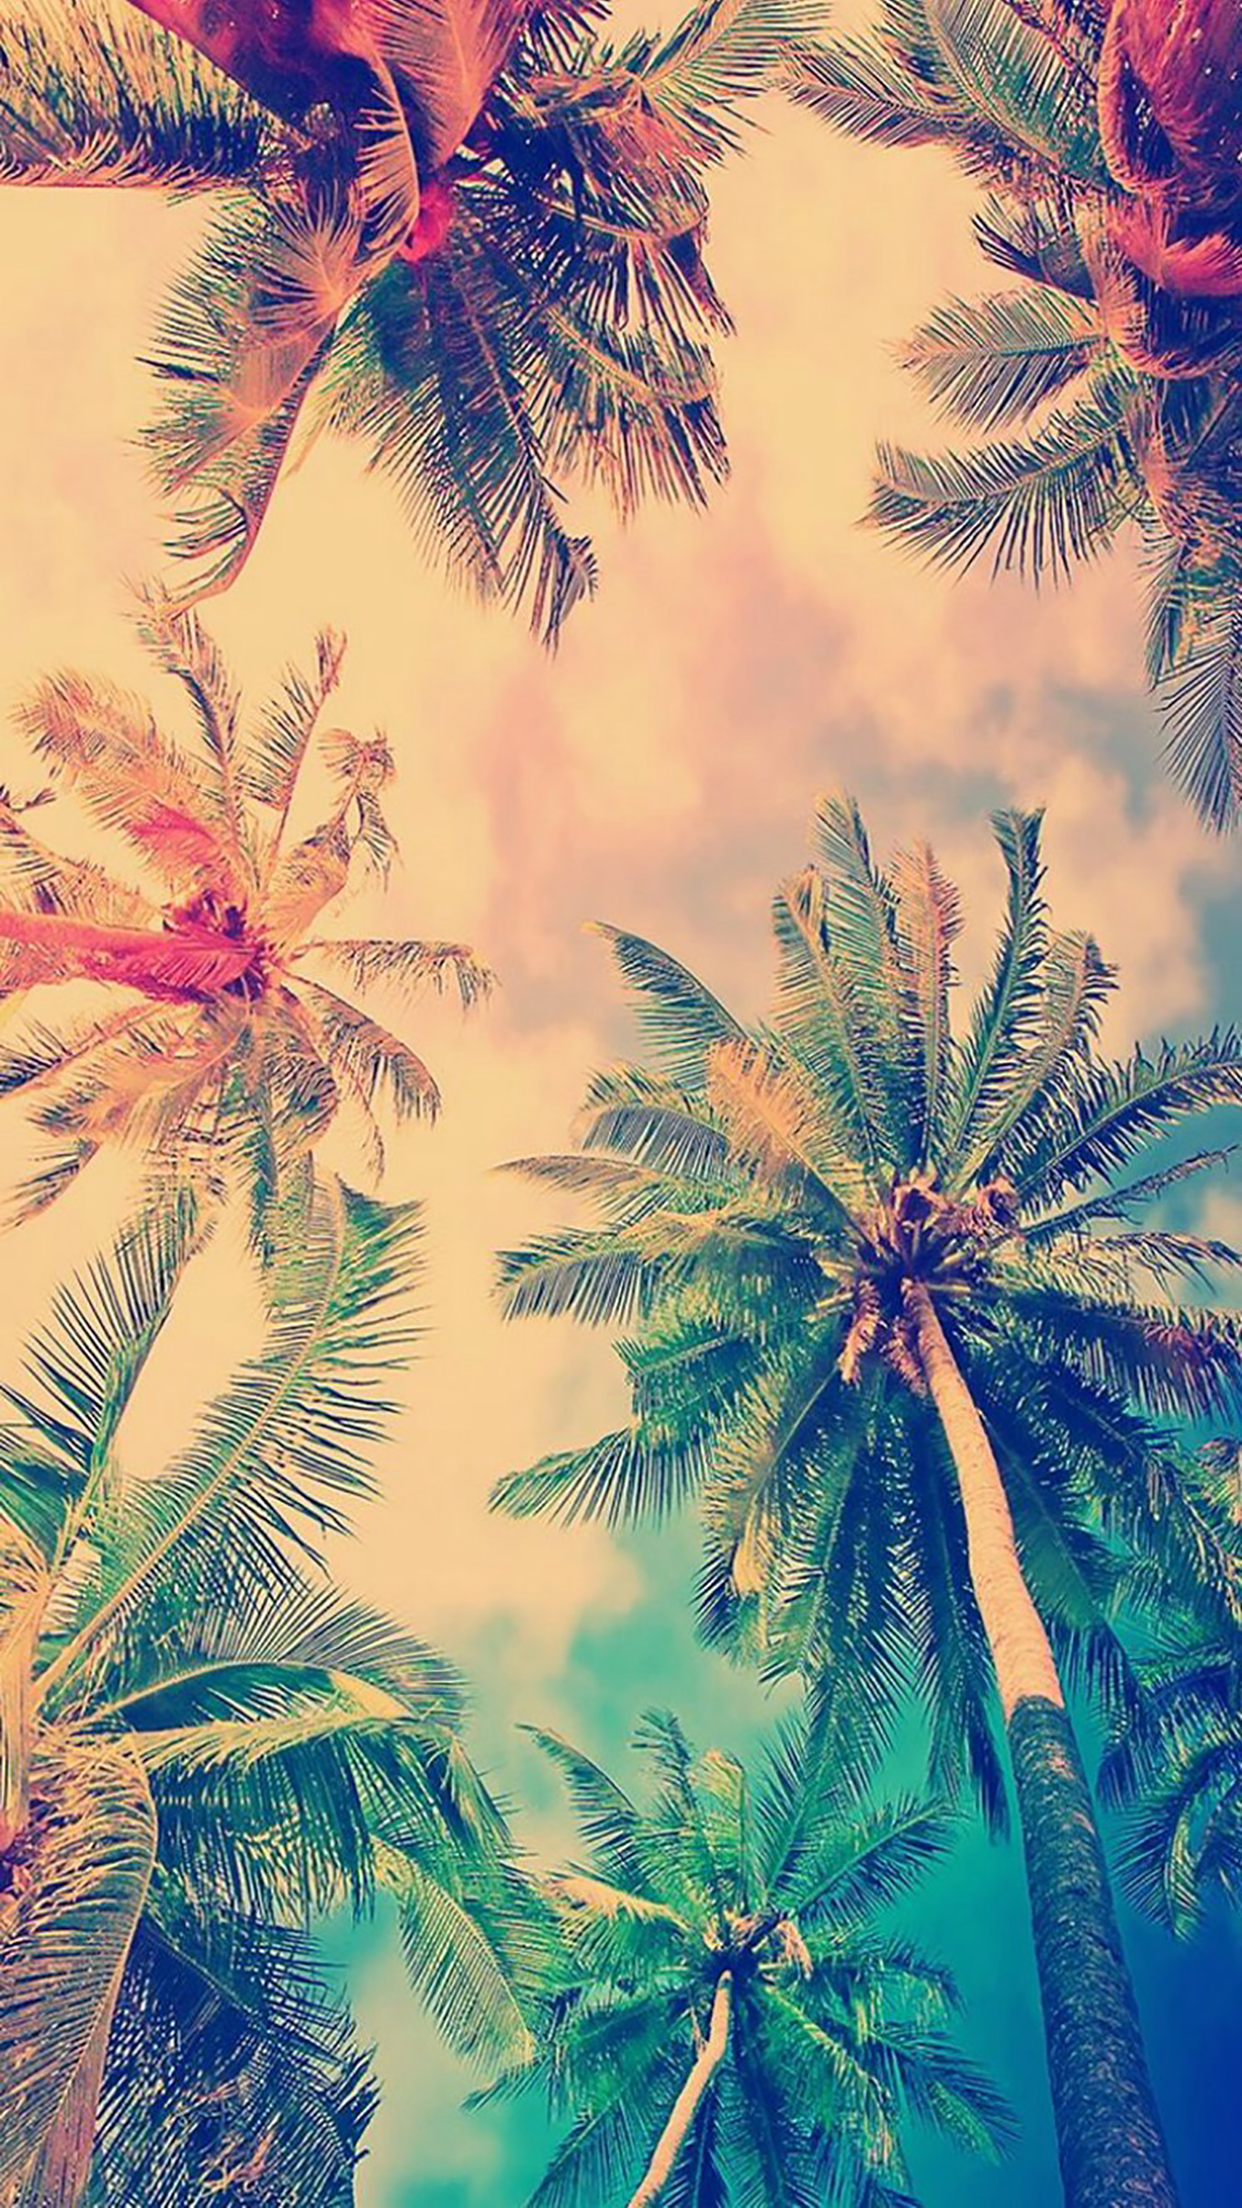 Coconut Palm 1 3Wallpapers iPhone Parallax Coconut Palm : 1